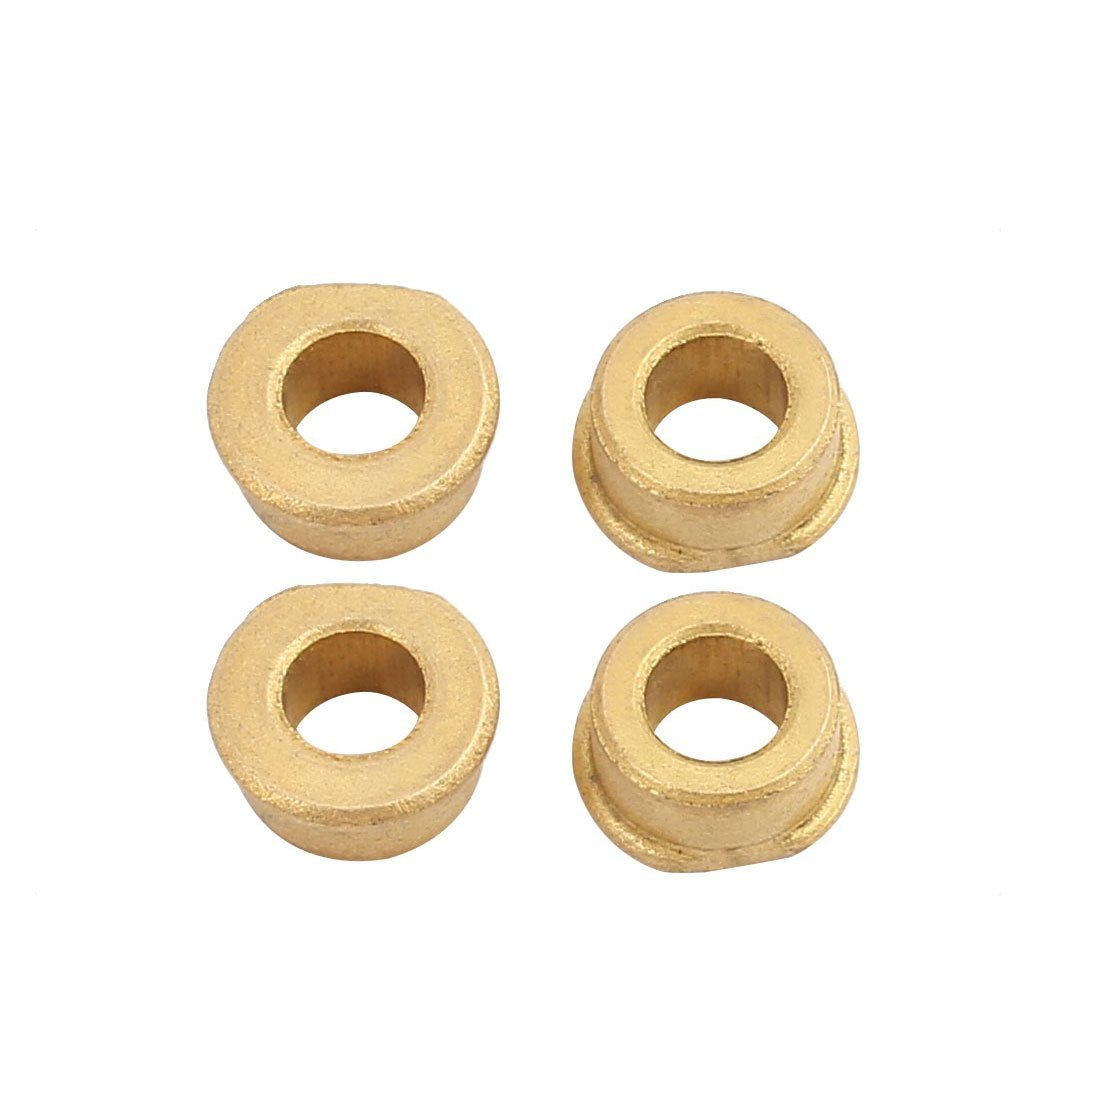 uxcell 2Pair 4mm Hole Dia Bronze Shaft Bushing Height 5mm Depth 8.2mm